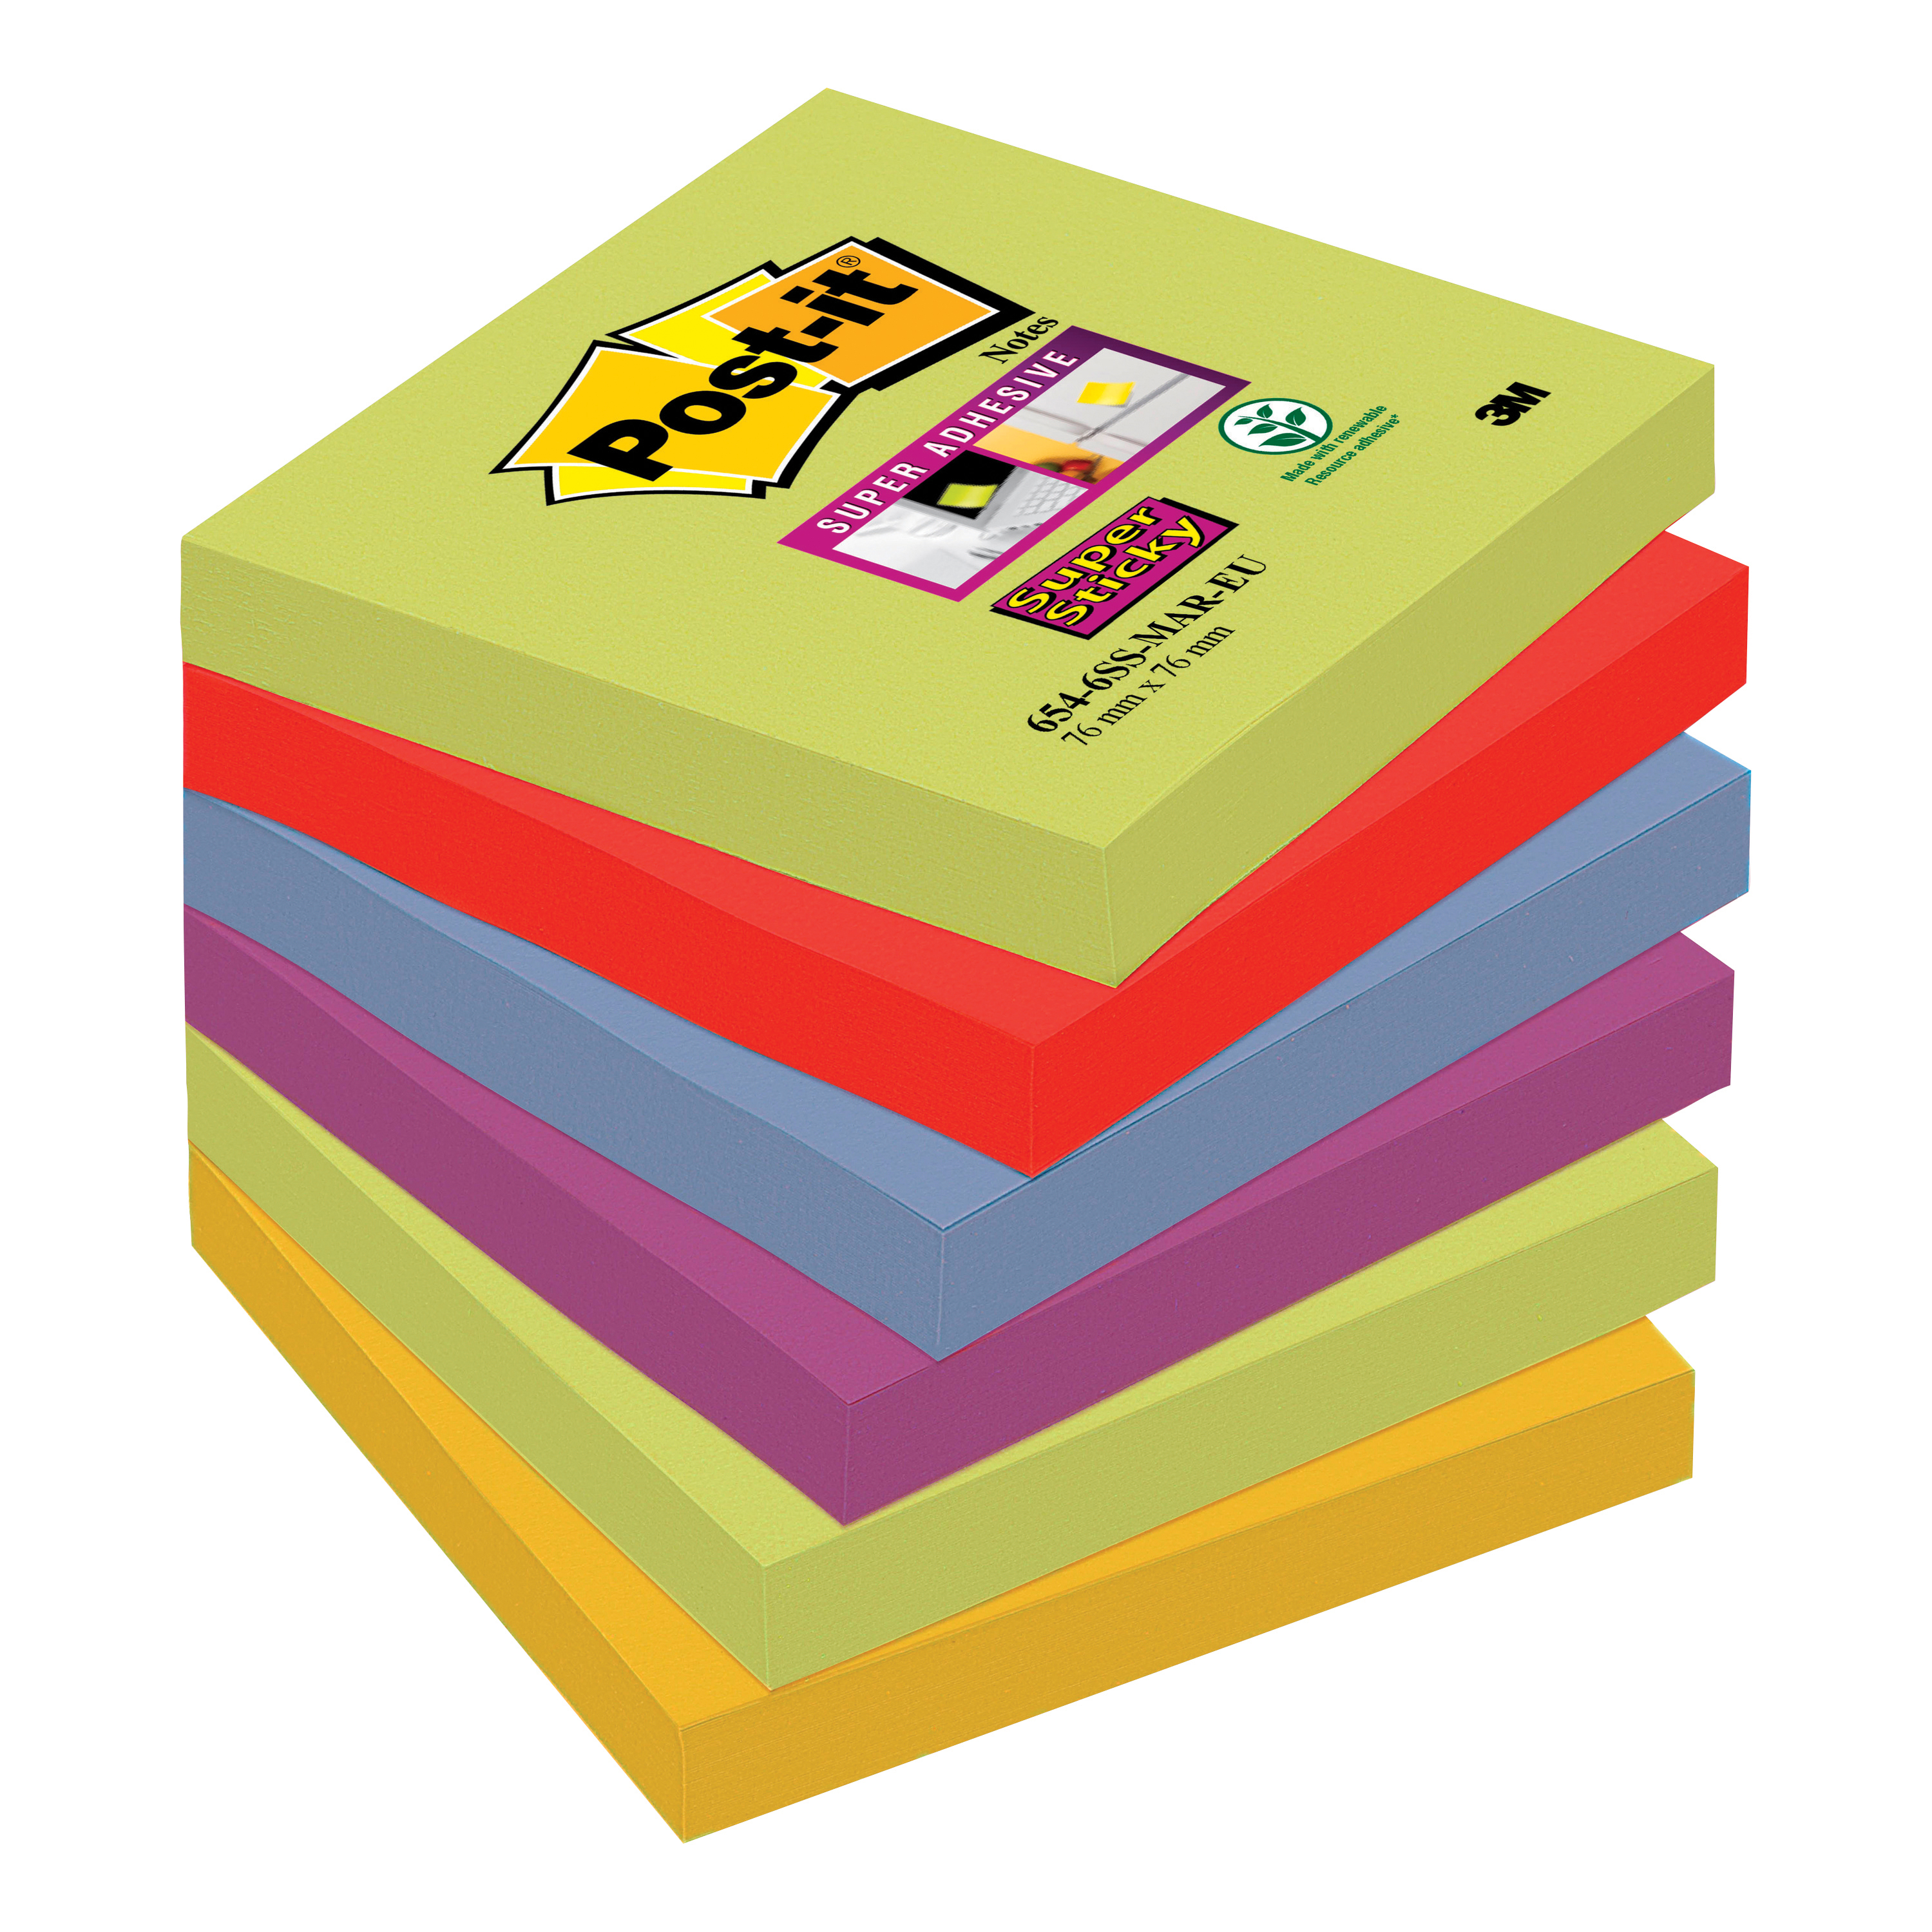 Post-it Super Sticky Removable Notes Pad 90 Sheets 76x76mm Marrakesh Ref 654-6SS-MAR-EU [Pack 6]